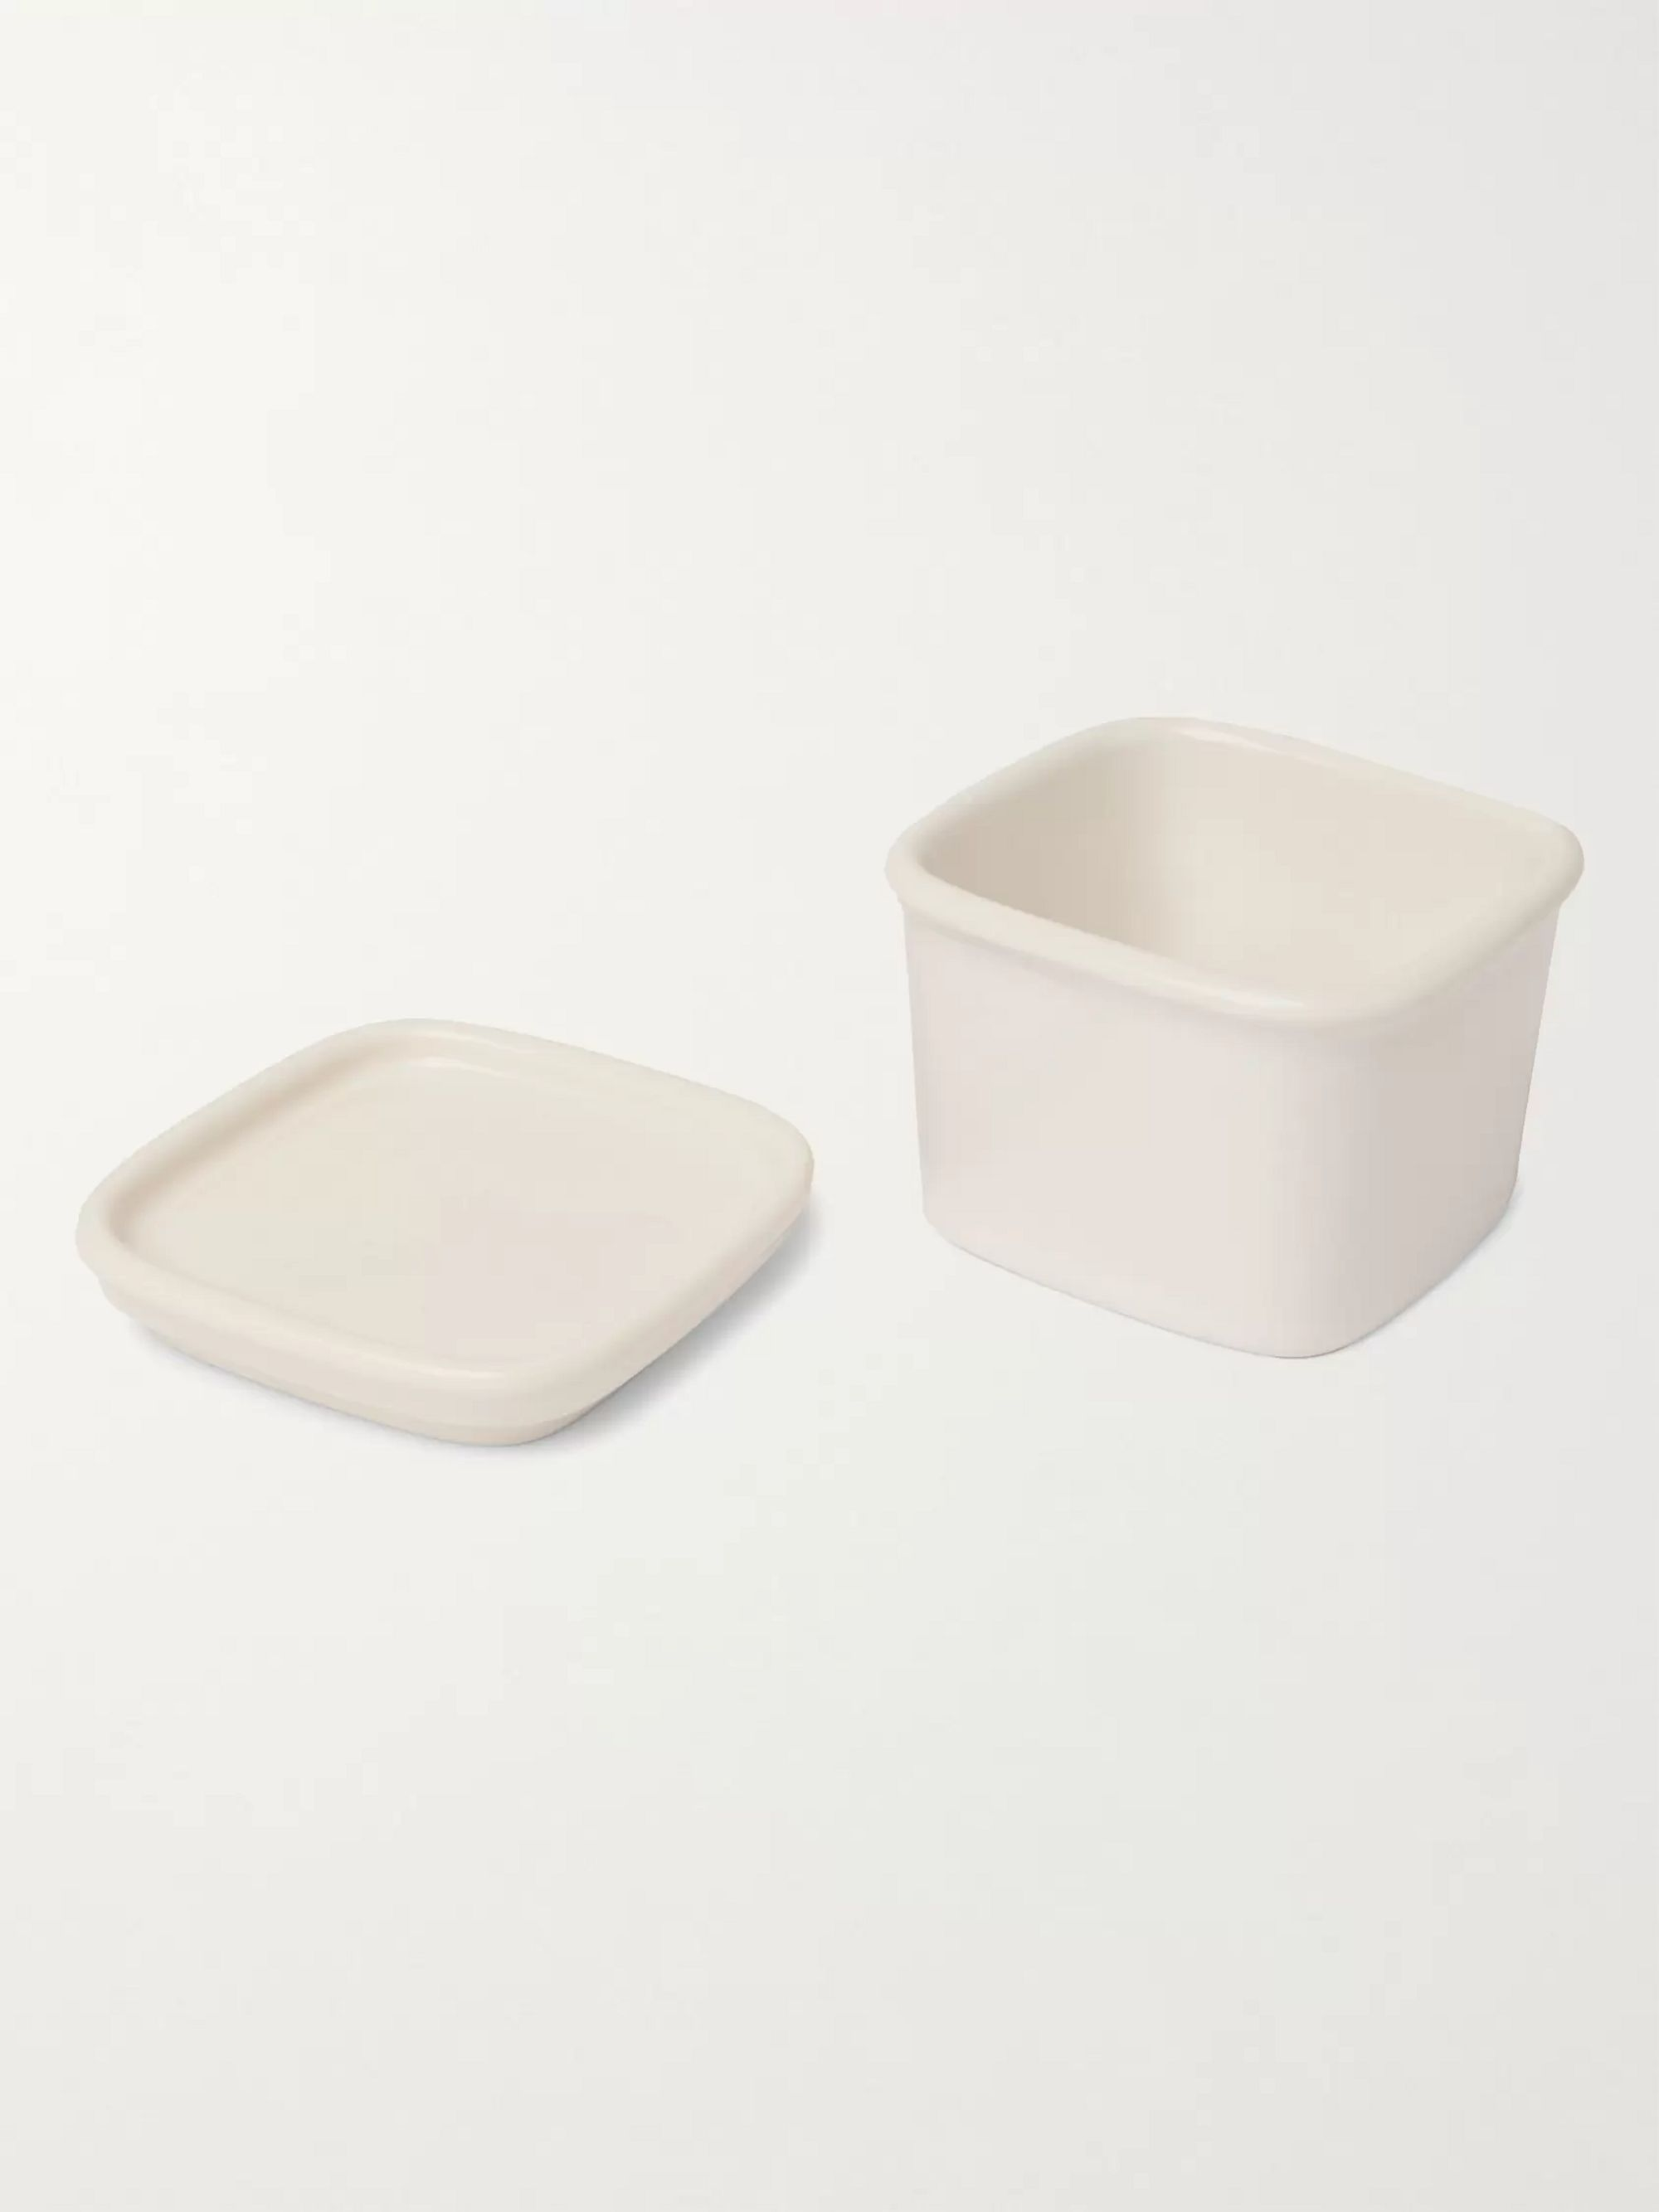 BY JAPAN + Ceramic Japan Harvest Small Porcelain Canister